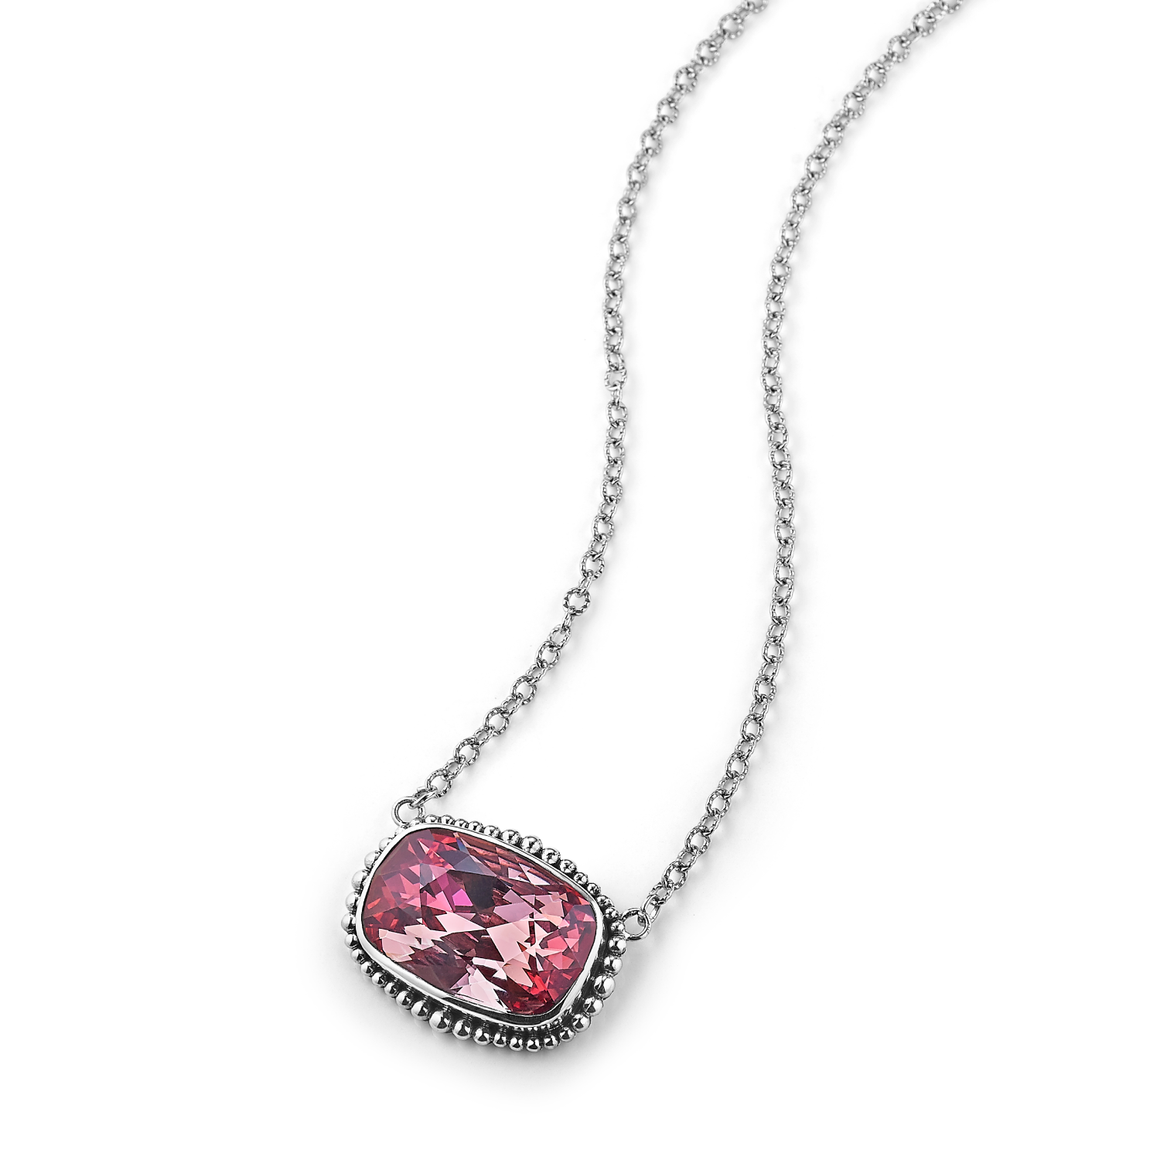 Spring Fling Solitaire Necklace